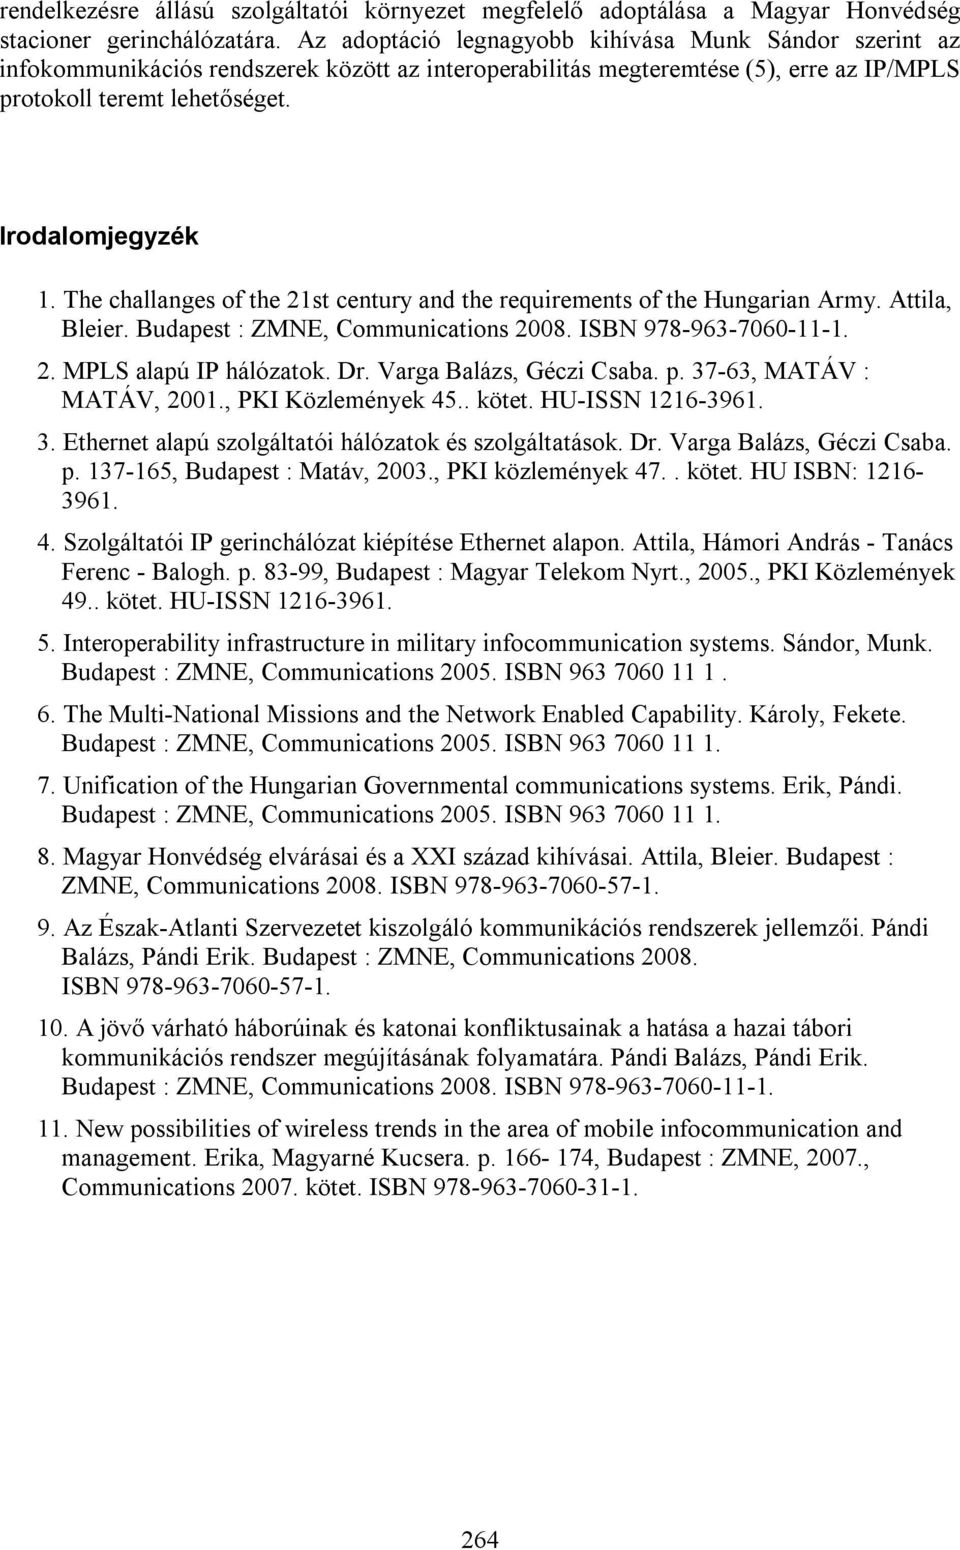 The challanges of the 21st century and the requirements of the Hungarian Army. Attila, Bleier. Budapest : ZMNE, Communications 2008. ISBN 978-963-7060-11-1. 2. MPLS alapú IP hálózatok. Dr.